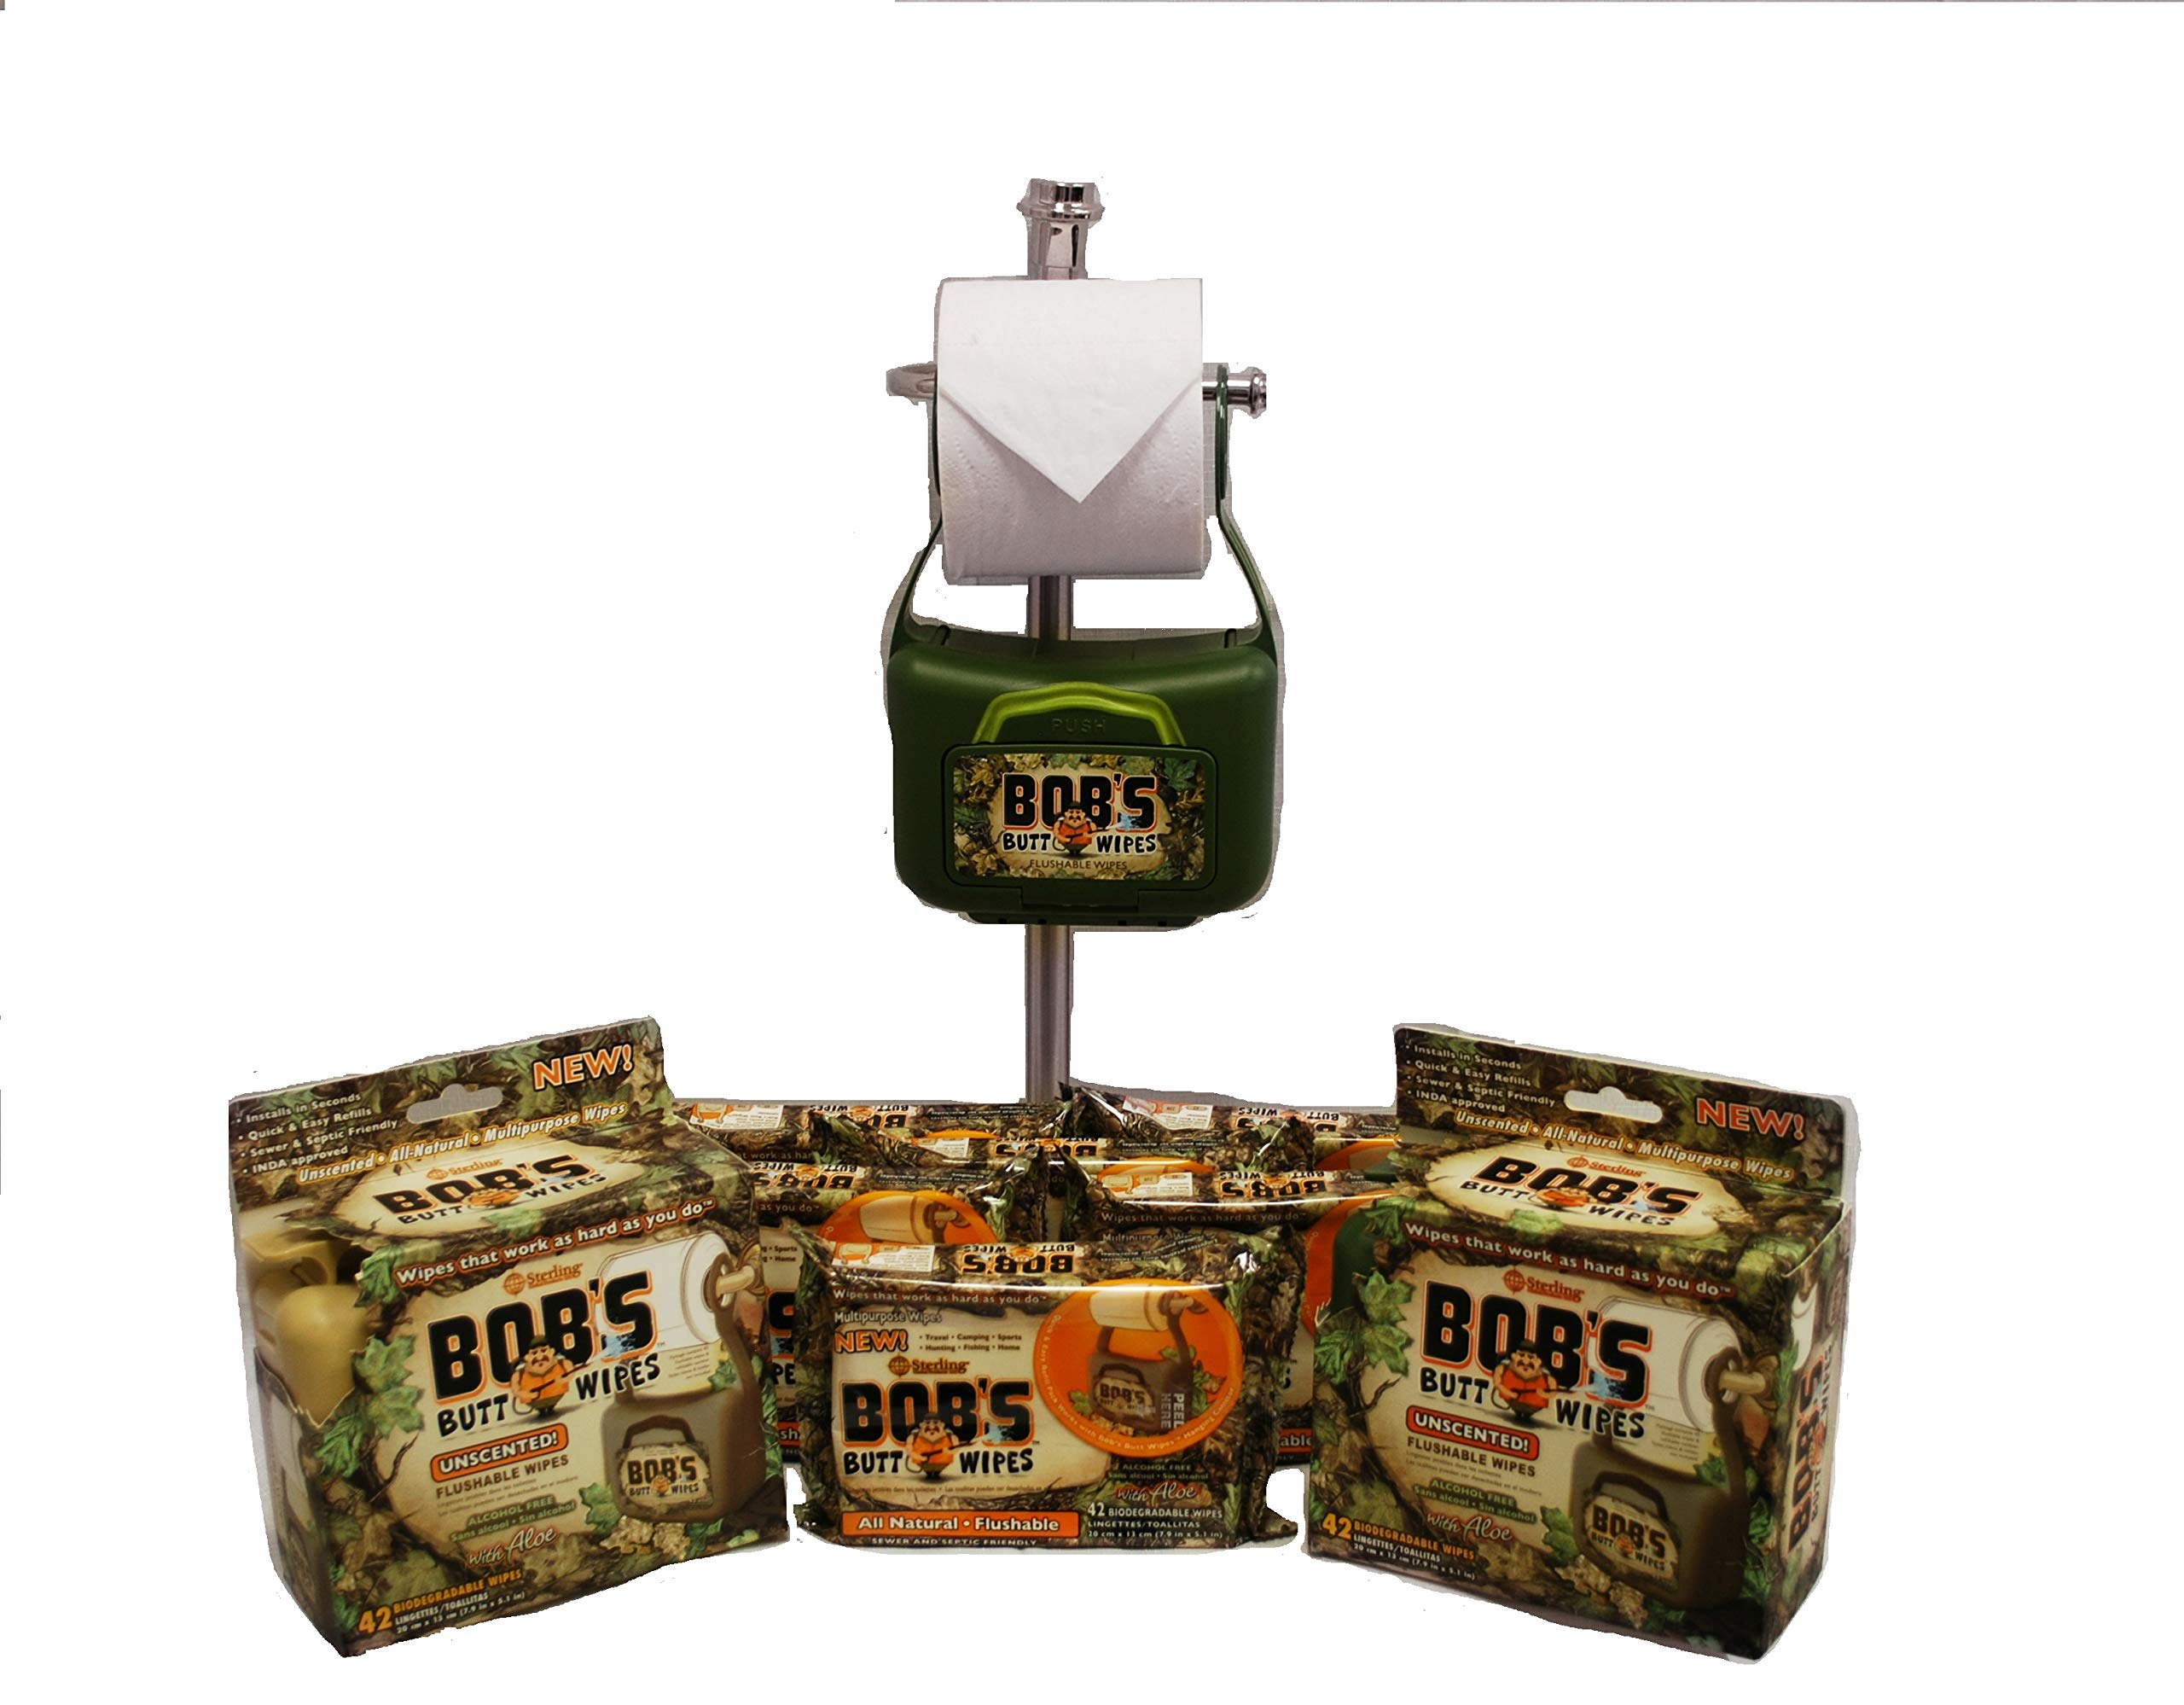 Bob's Butt Wipes 2 Hanging Dispensers & 6 Packs of 42ct. Flushable Wet Wipes